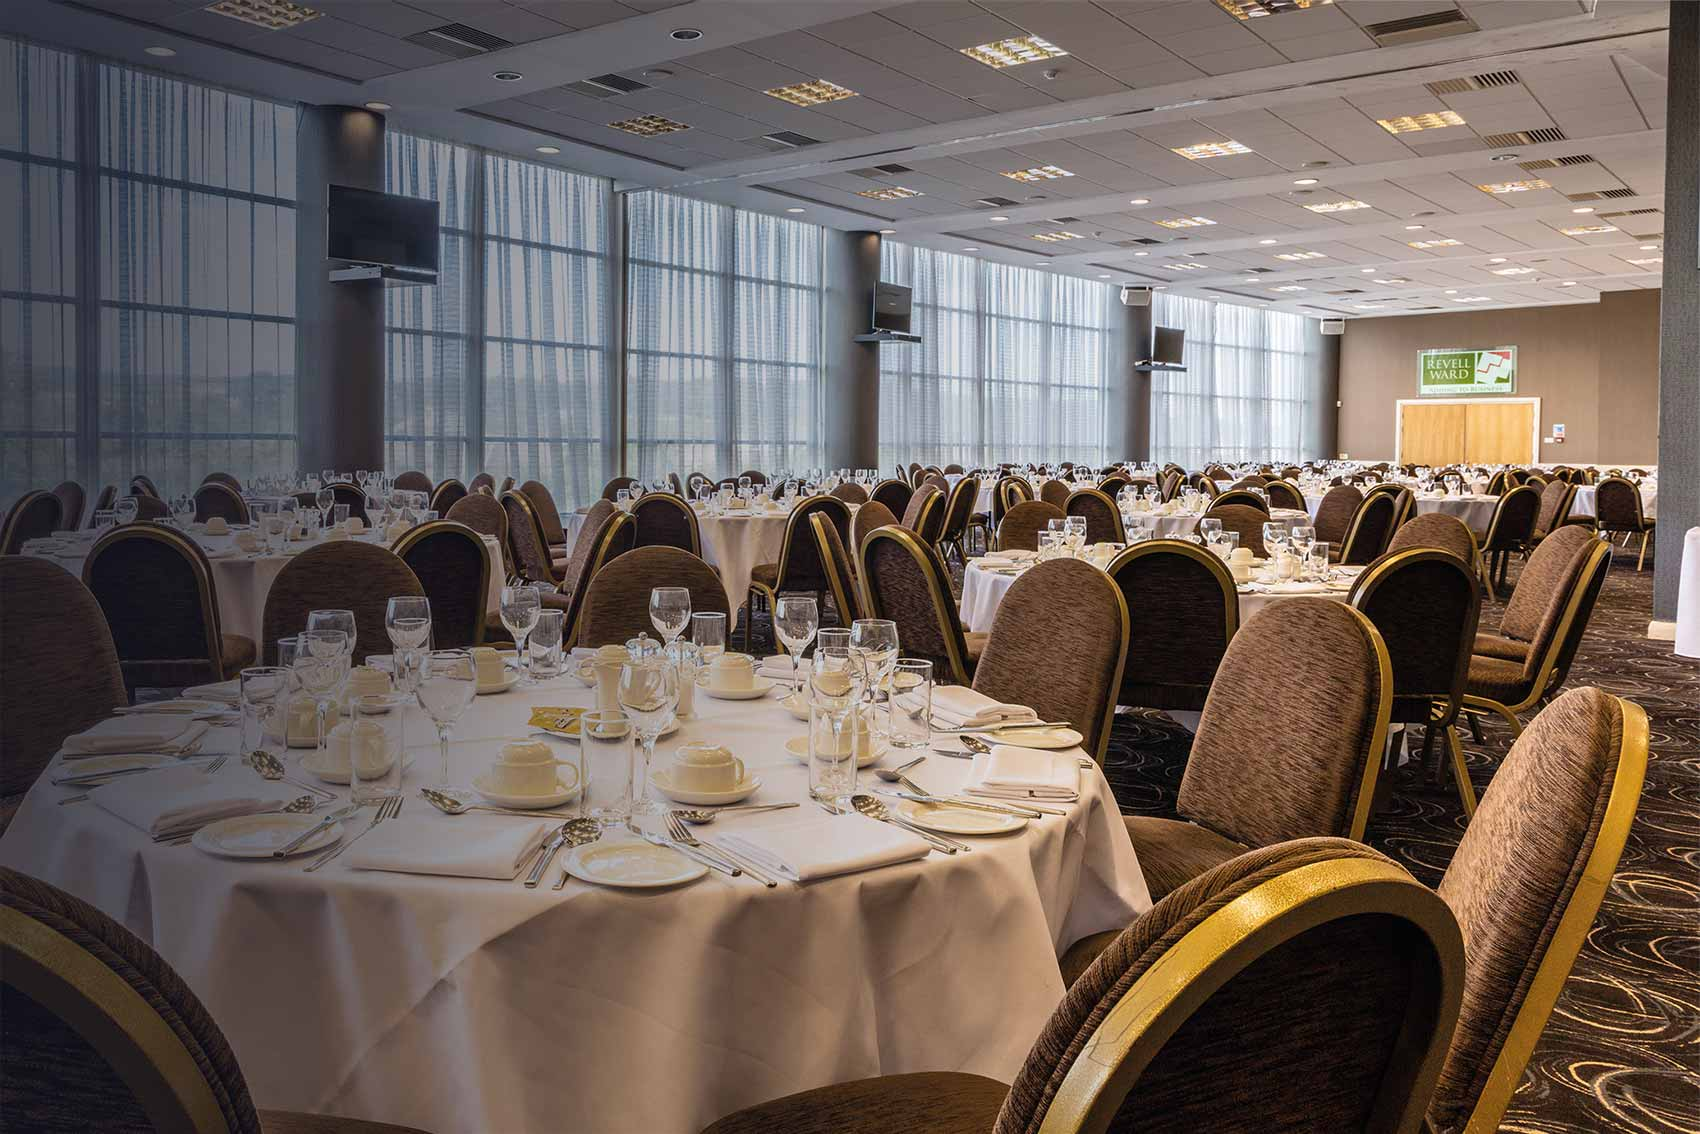 The perfect venue for Business Conferences